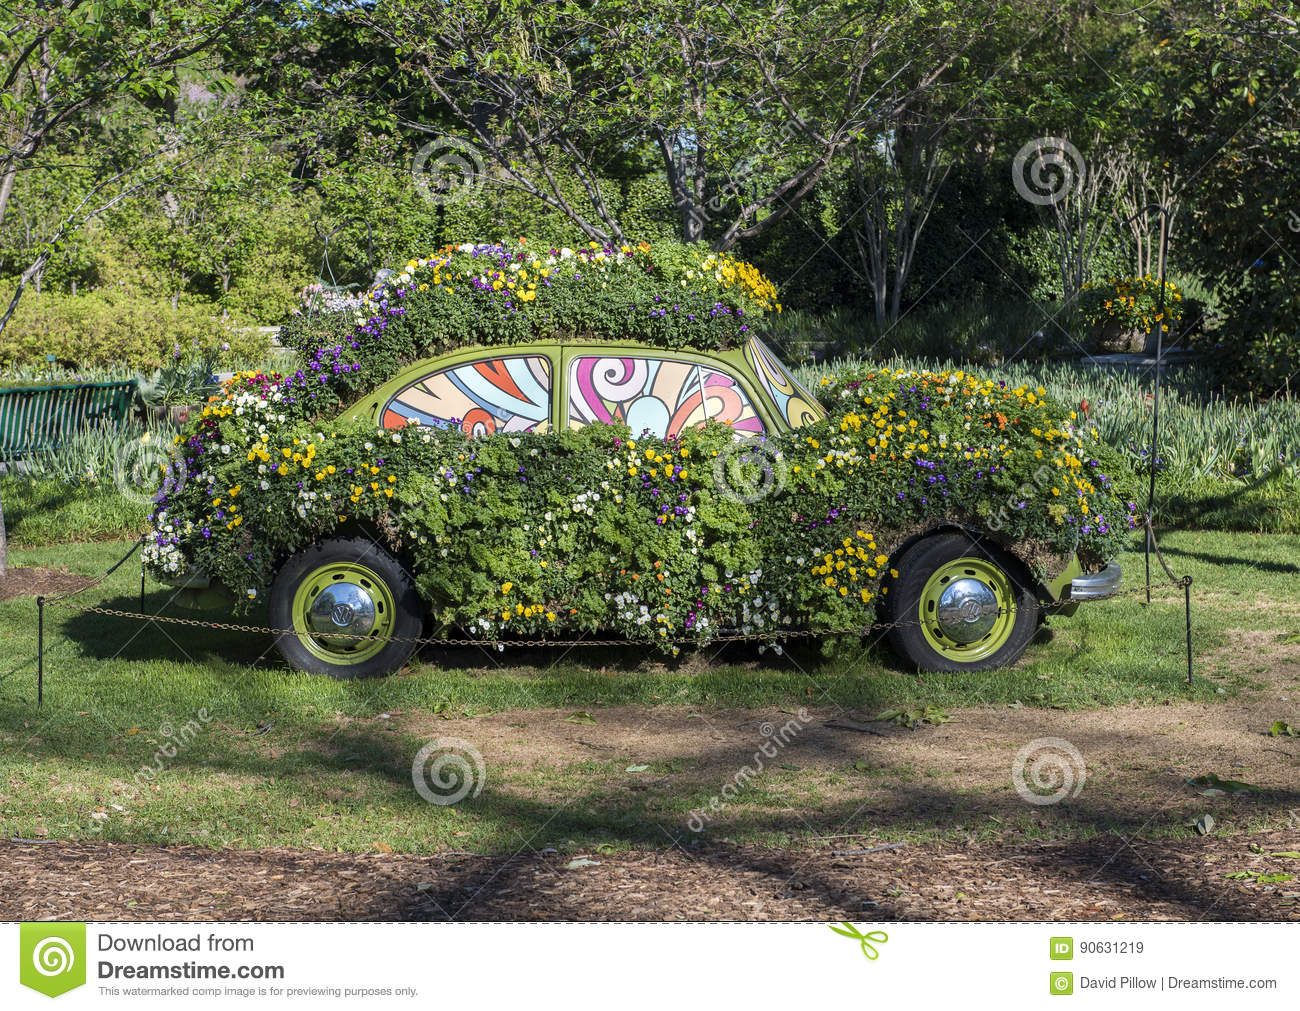 Een oud Volkswagen-insect is behandeld met pansies in Dallas Arboretum